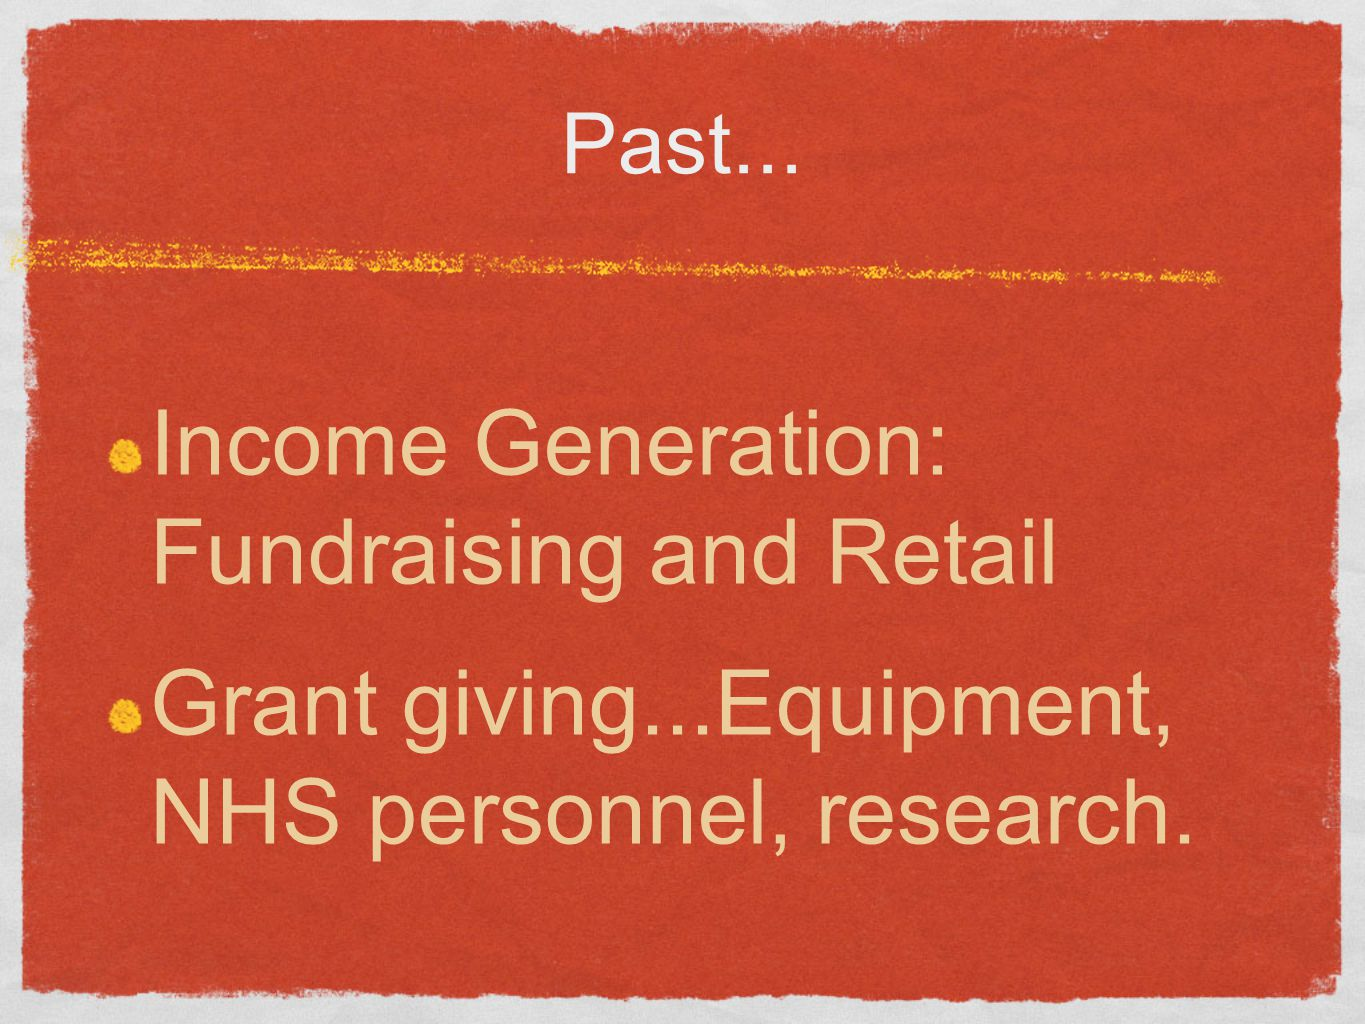 Past... Income Generation: Fundraising and Retail Grant giving...Equipment, NHS personnel, research.